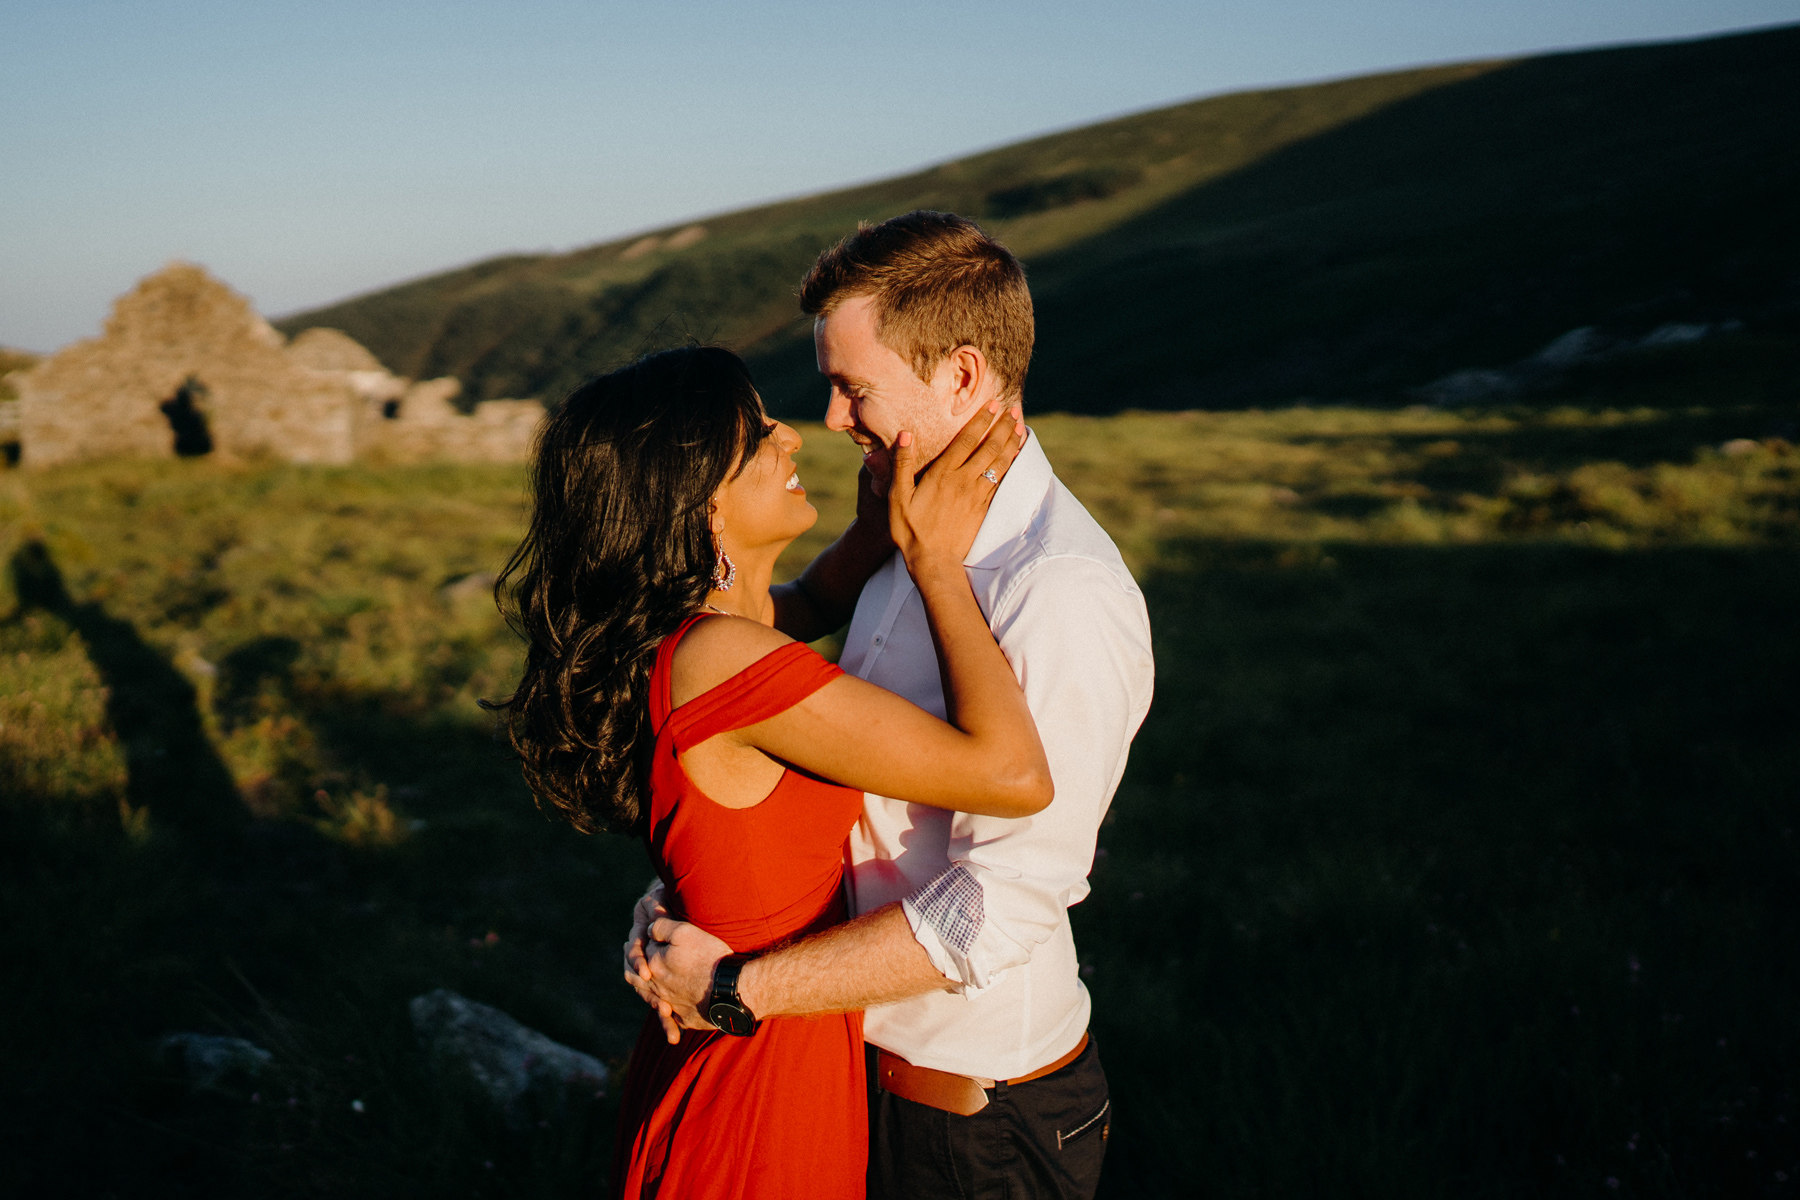 Dating Site in Wicklow - Send Messages for Free to Local